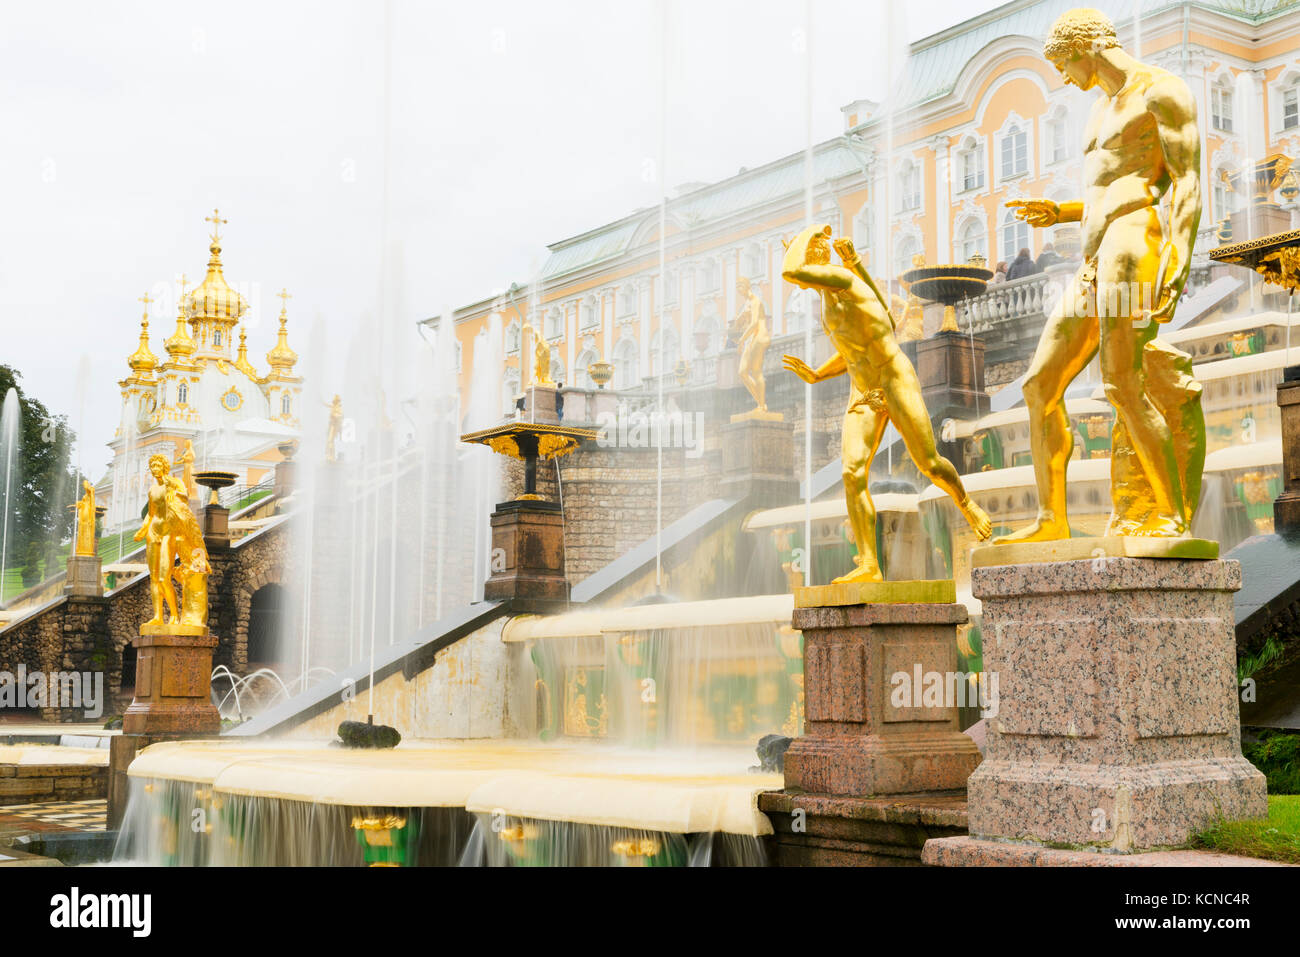 The Grand Cascade in front of the Grand Palace, Peterhof, near Saint Petersburg, Russia Stock Photo